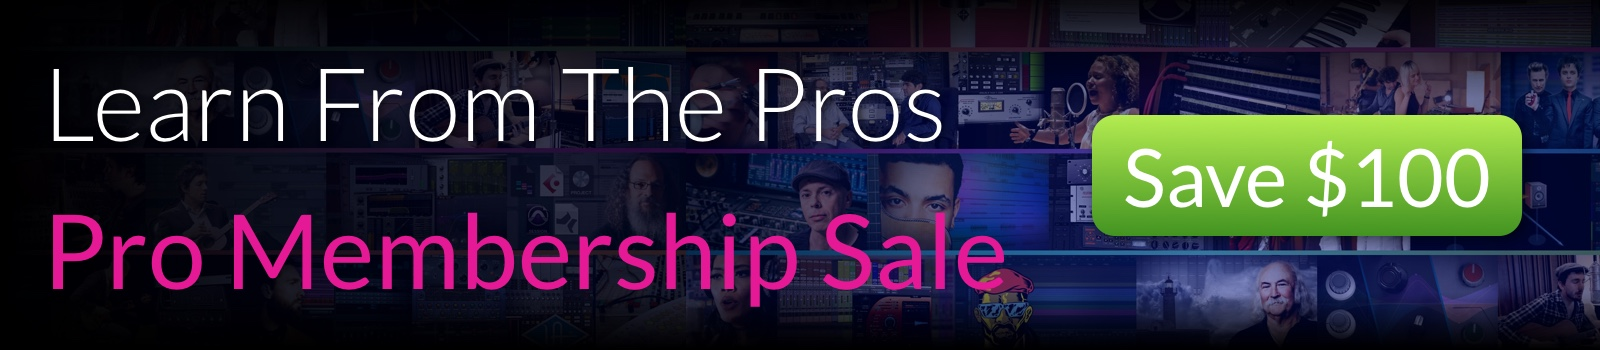 pureMix Fall Sale - Save $100 on Pro Memberships and get everything pureMix has to offer!